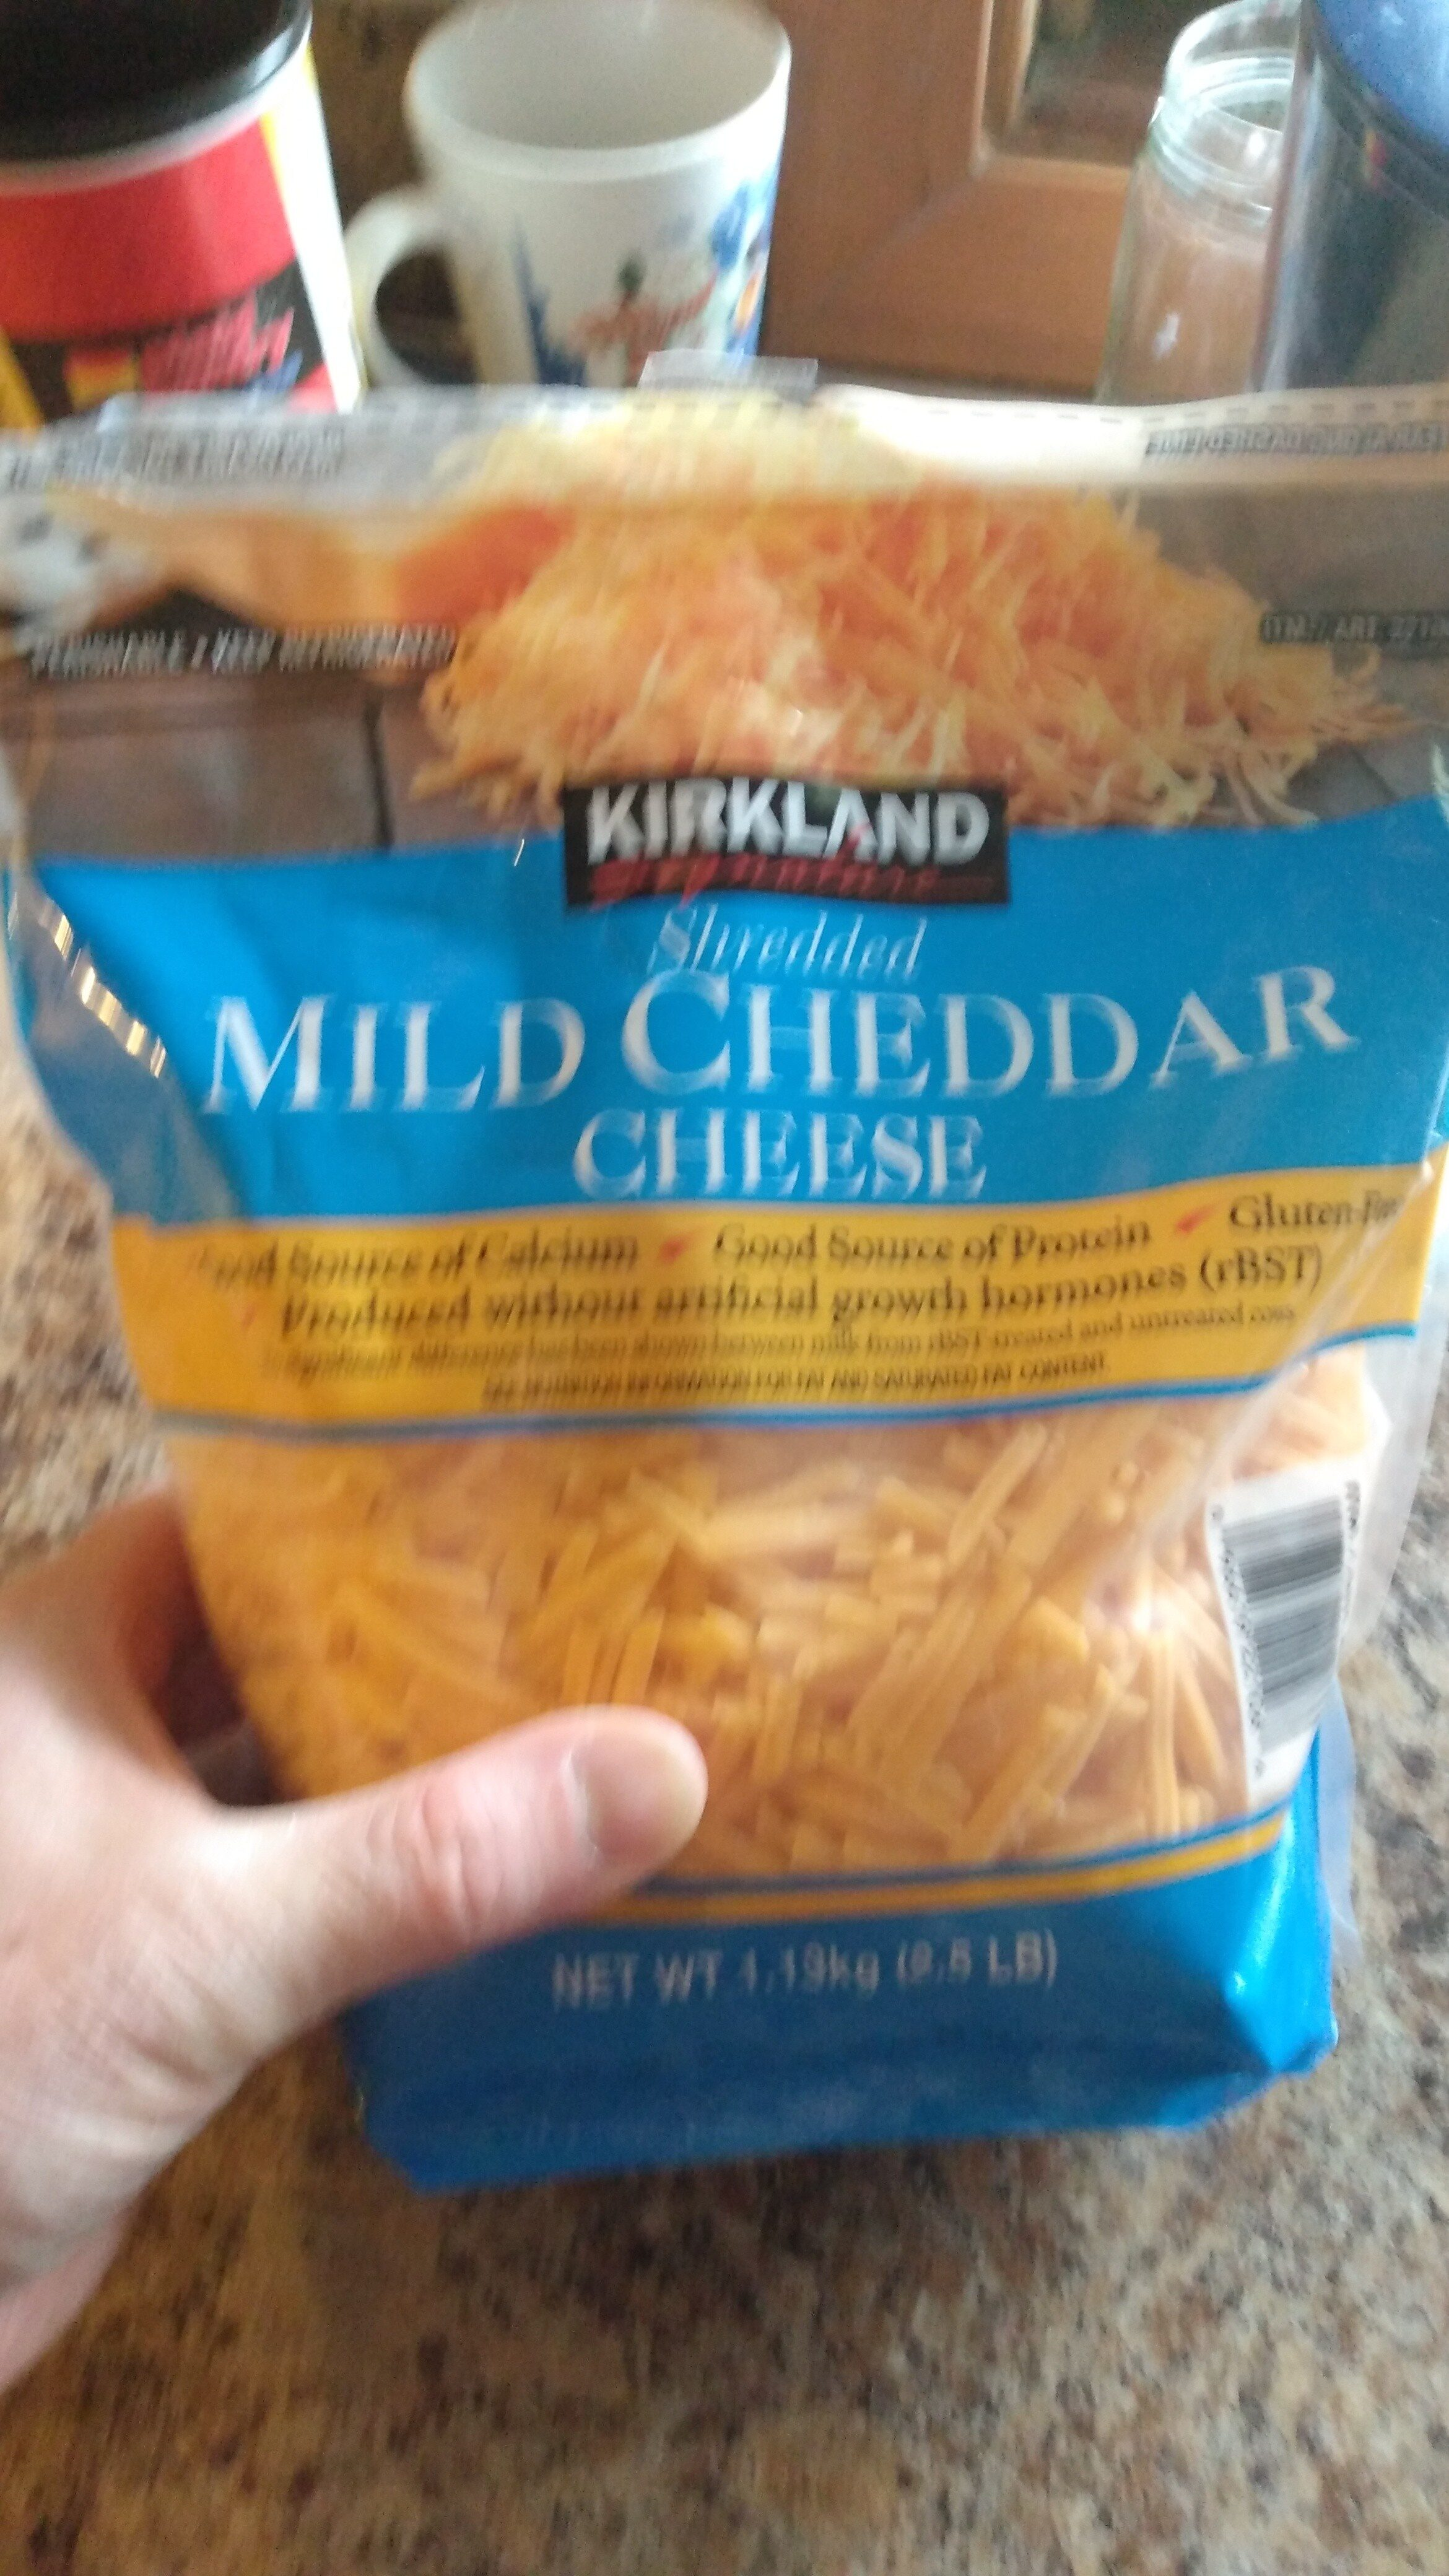 Mild Cheddar Cheese - Product